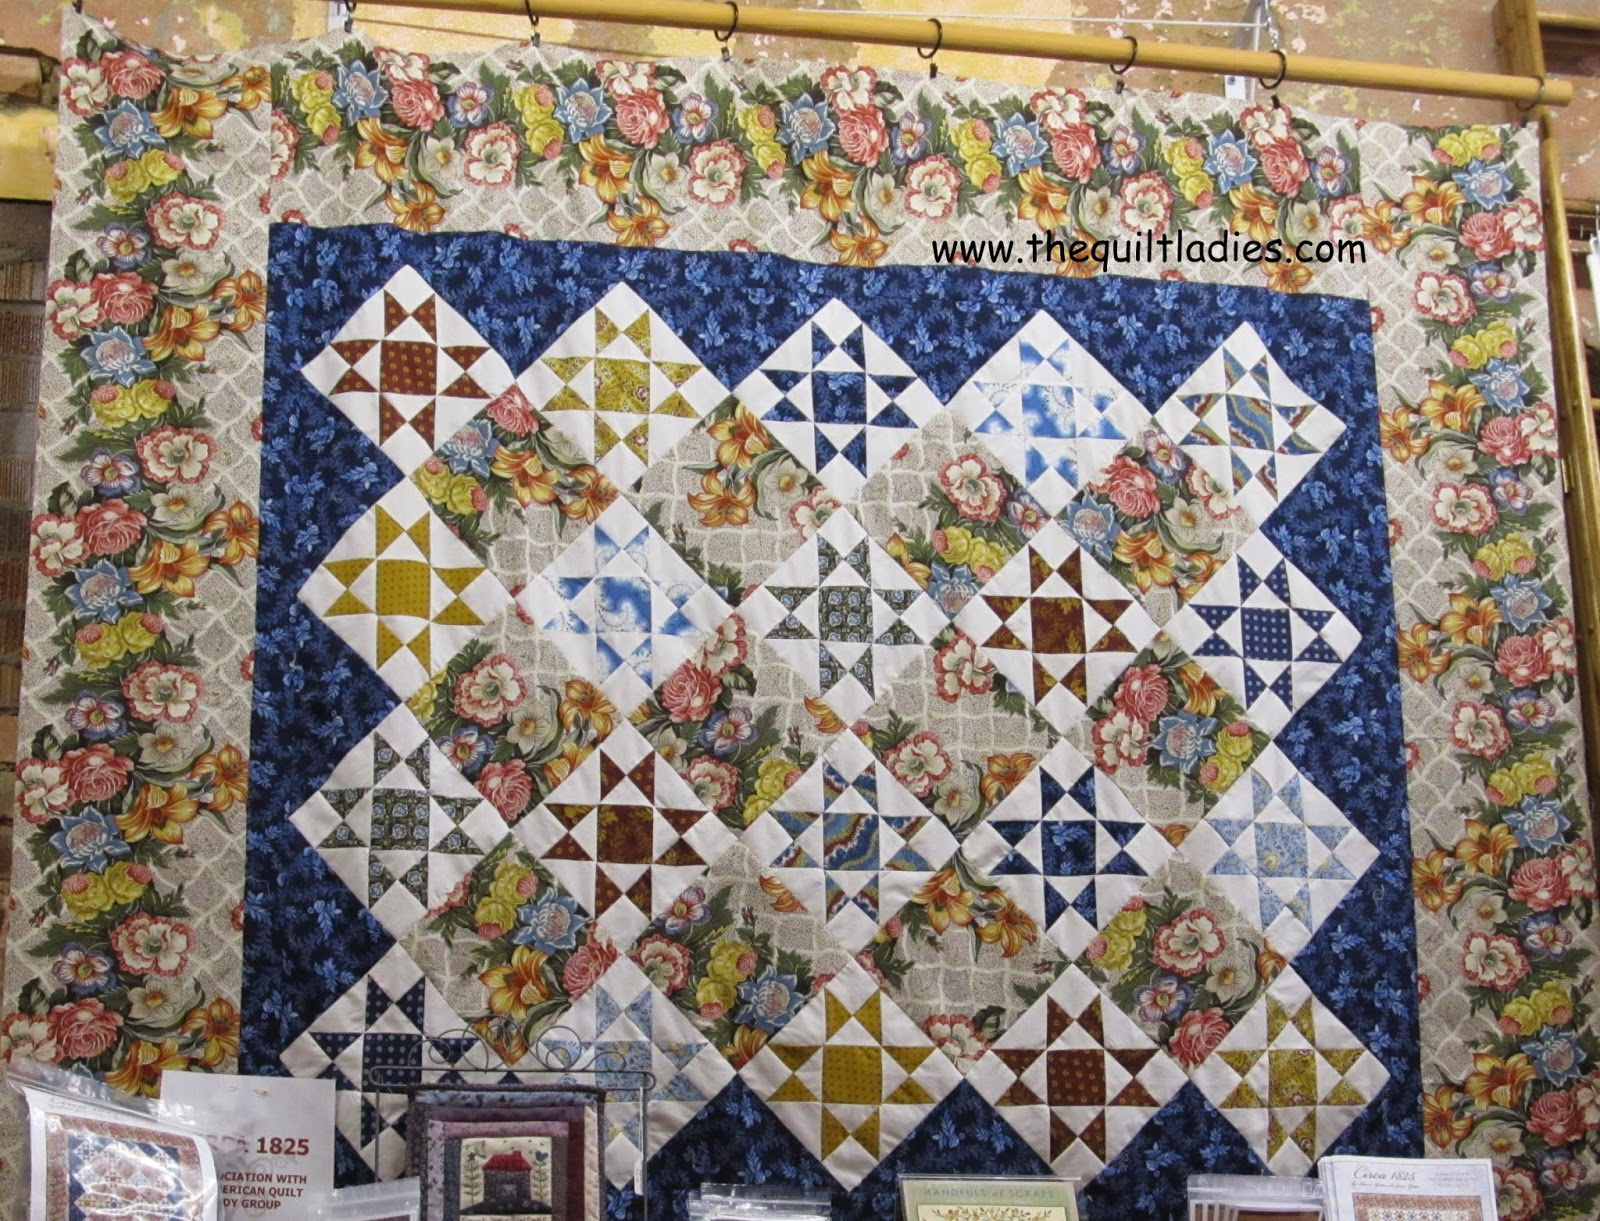 flower border and star pattern quilt